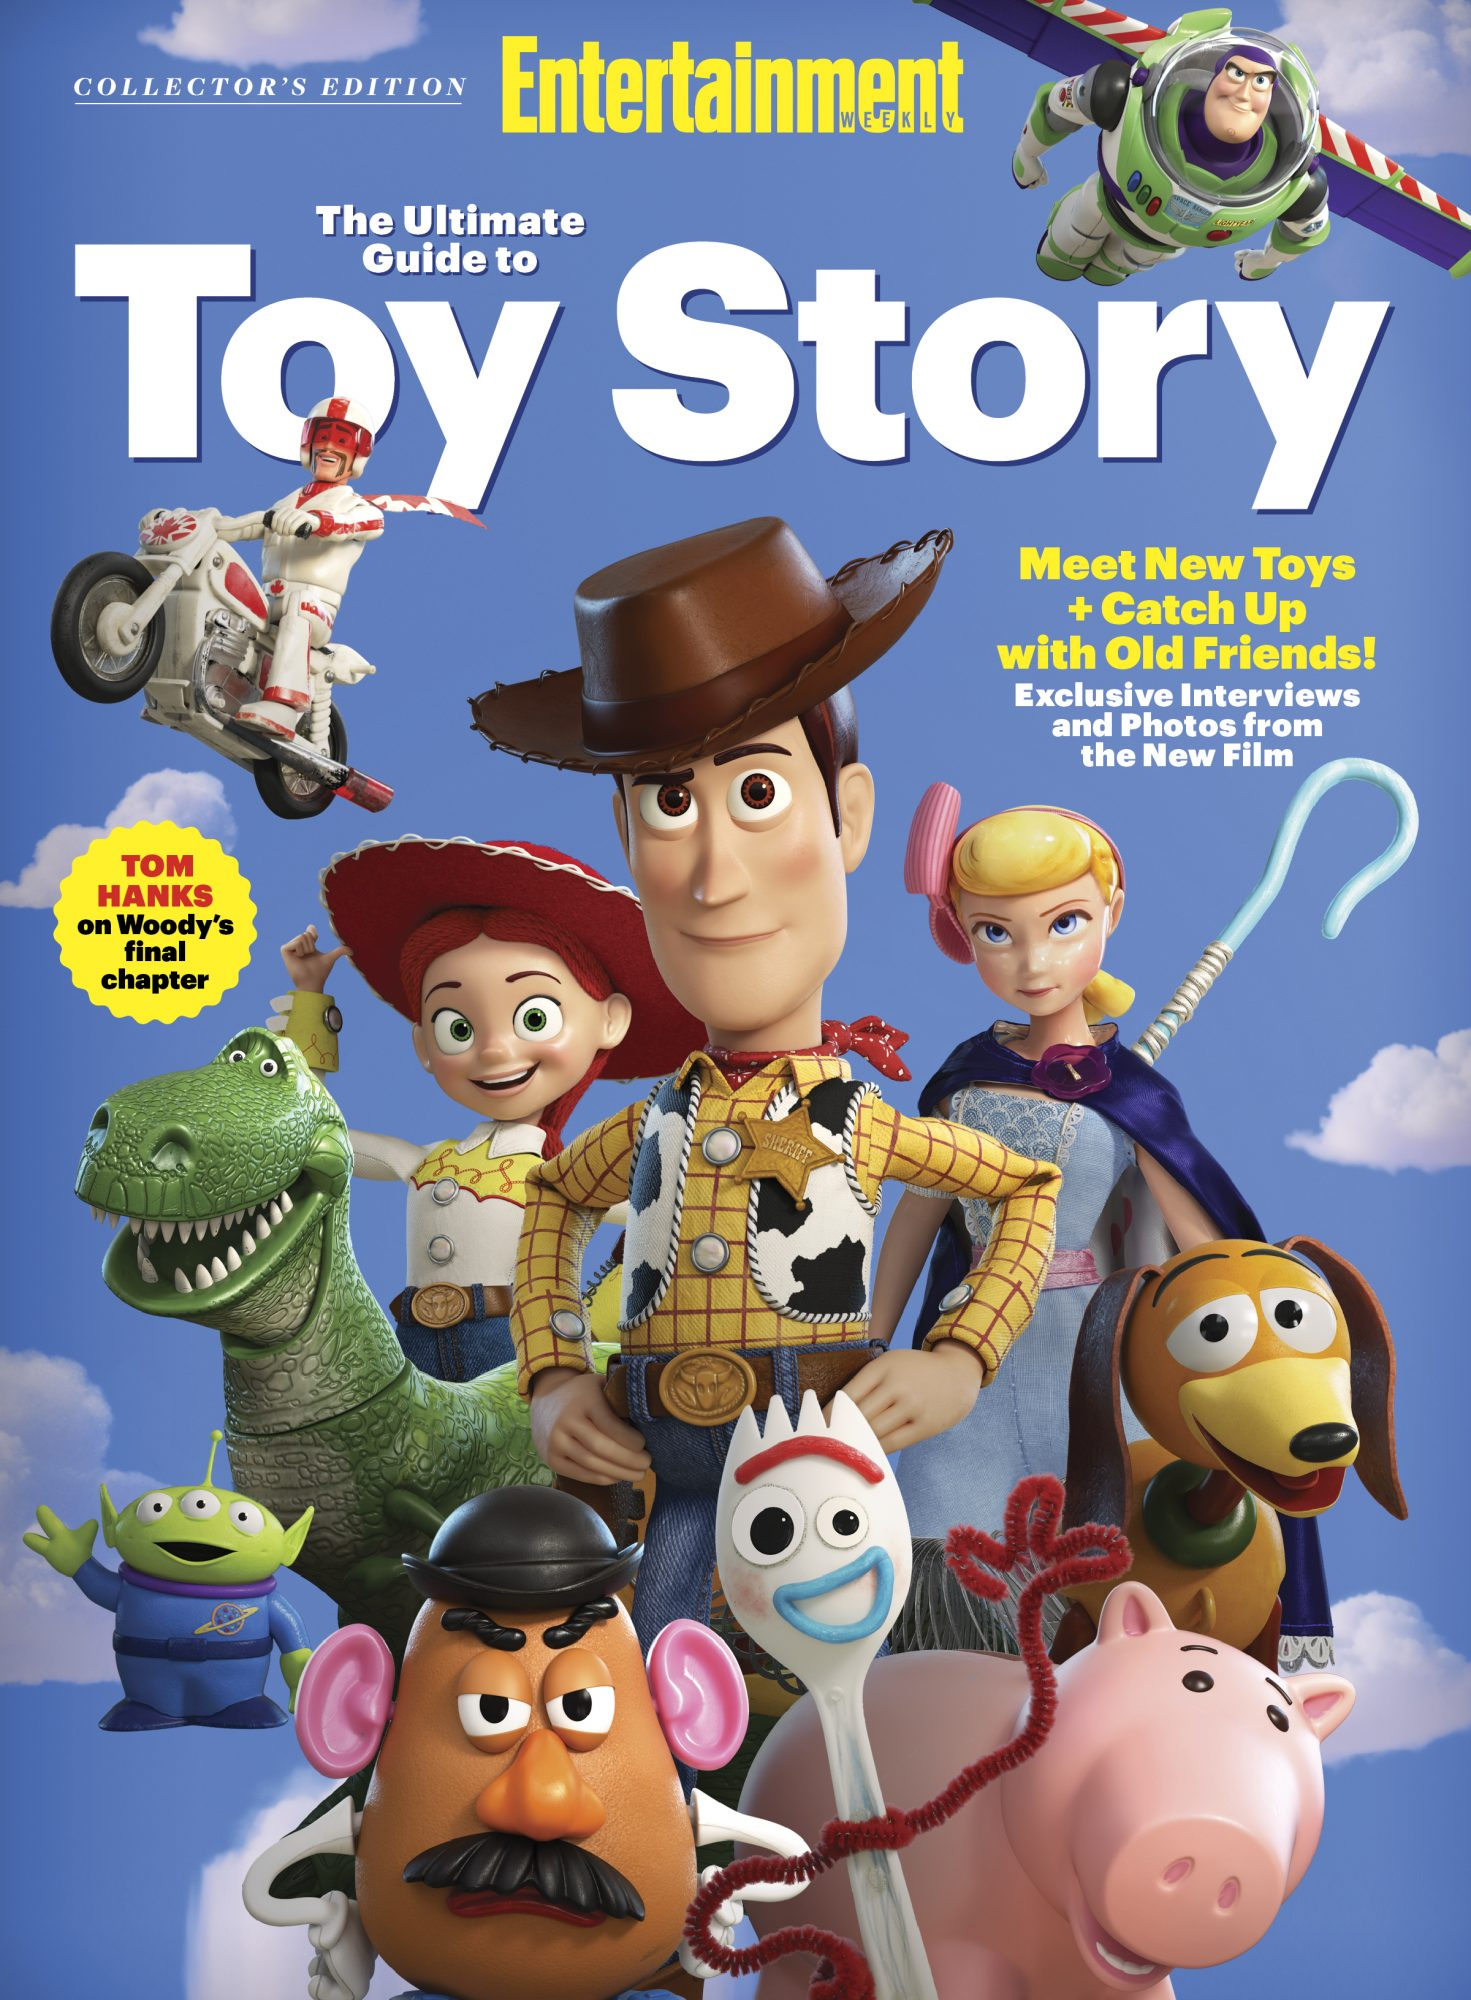 Toy Story collector's edition cover 2019